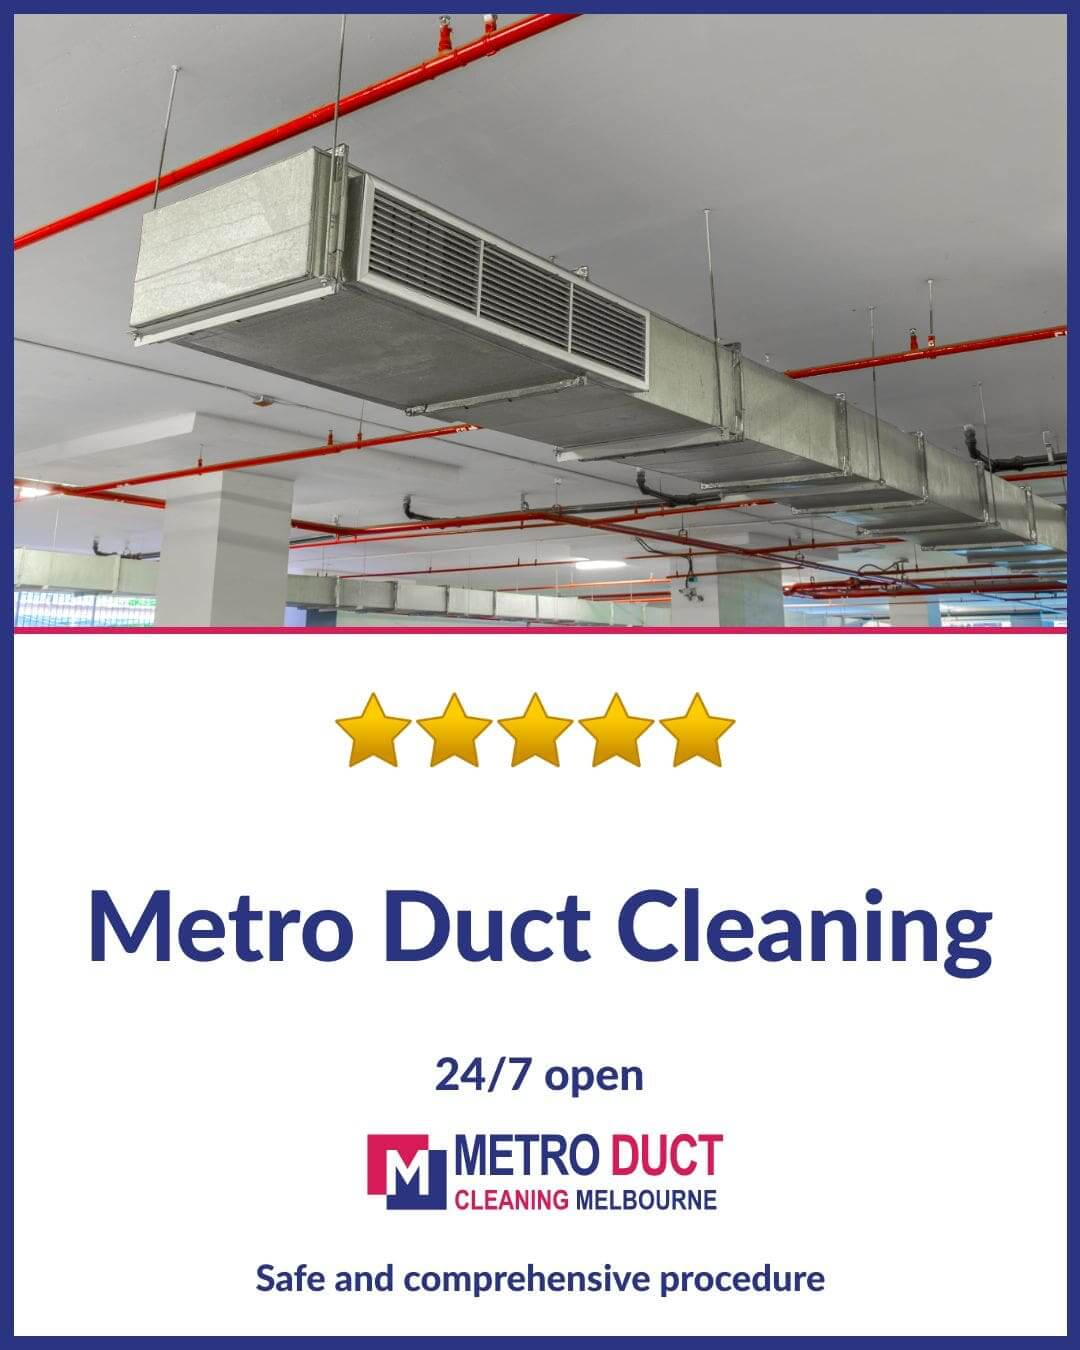 Metro Duct Cleaning